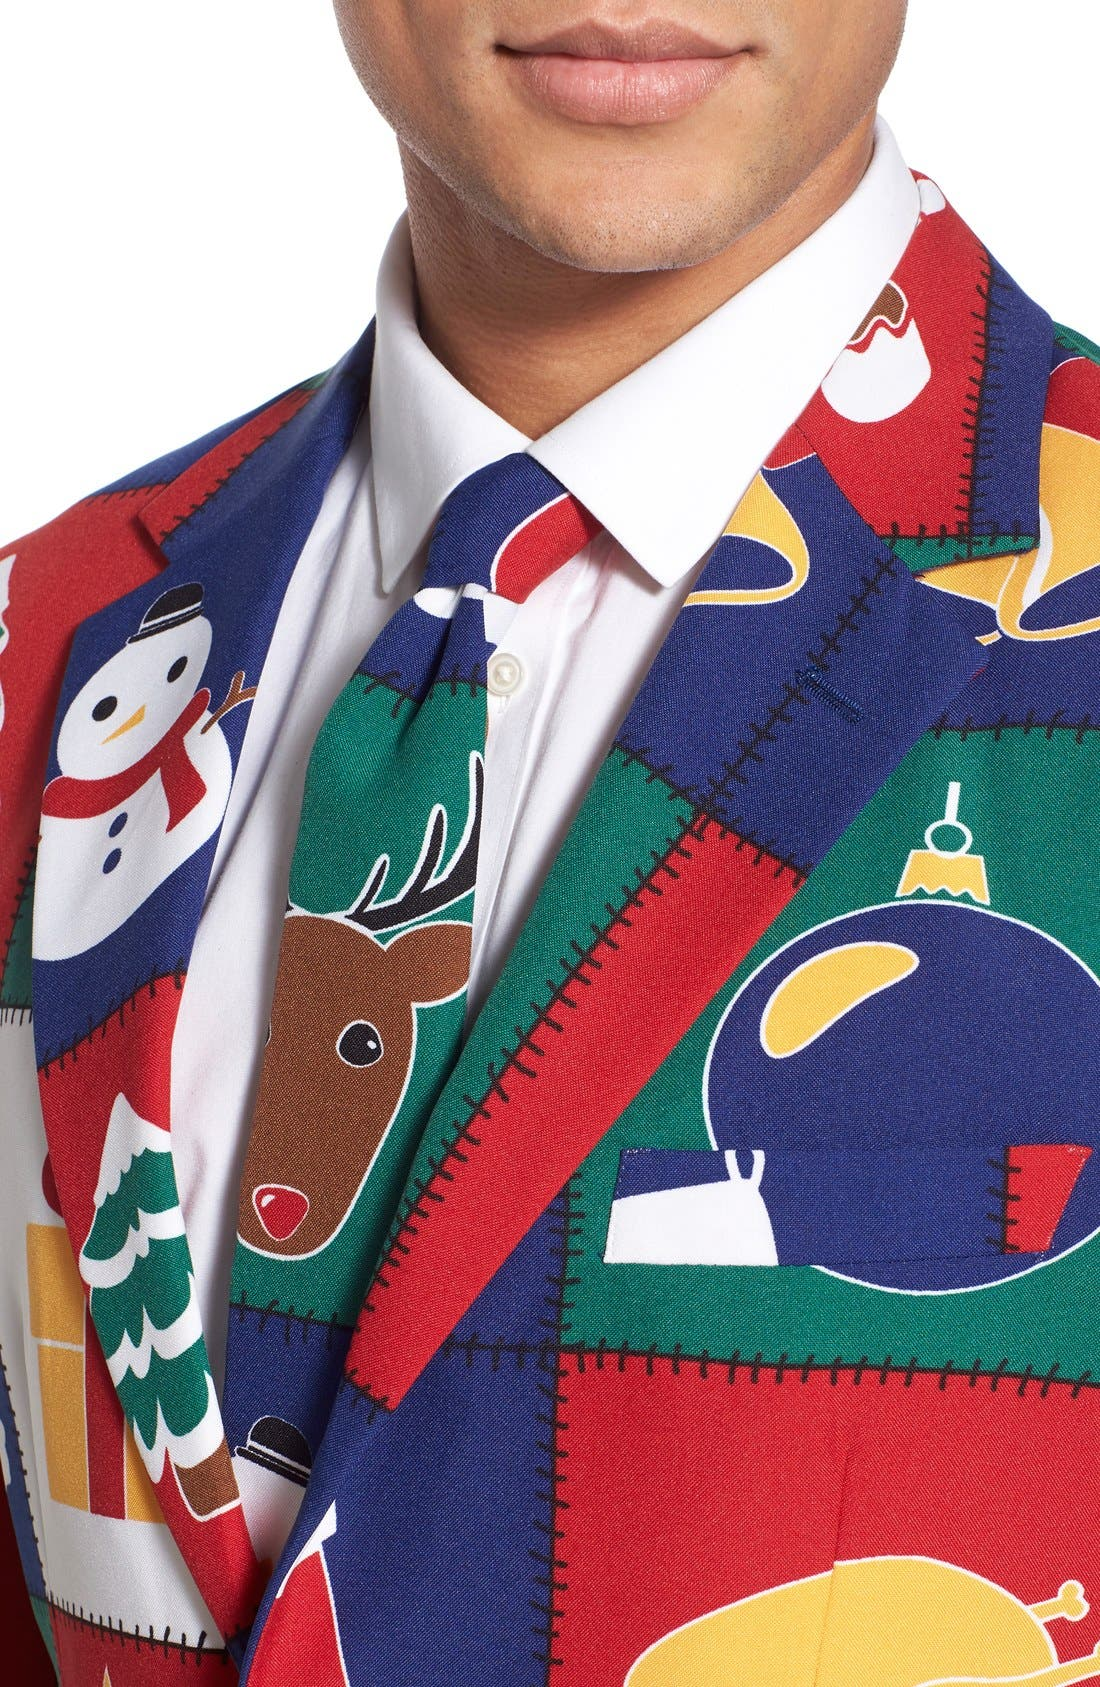 'Quilty Pleasure' Holiday Suit & Tie,                             Alternate thumbnail 6, color,                             Green